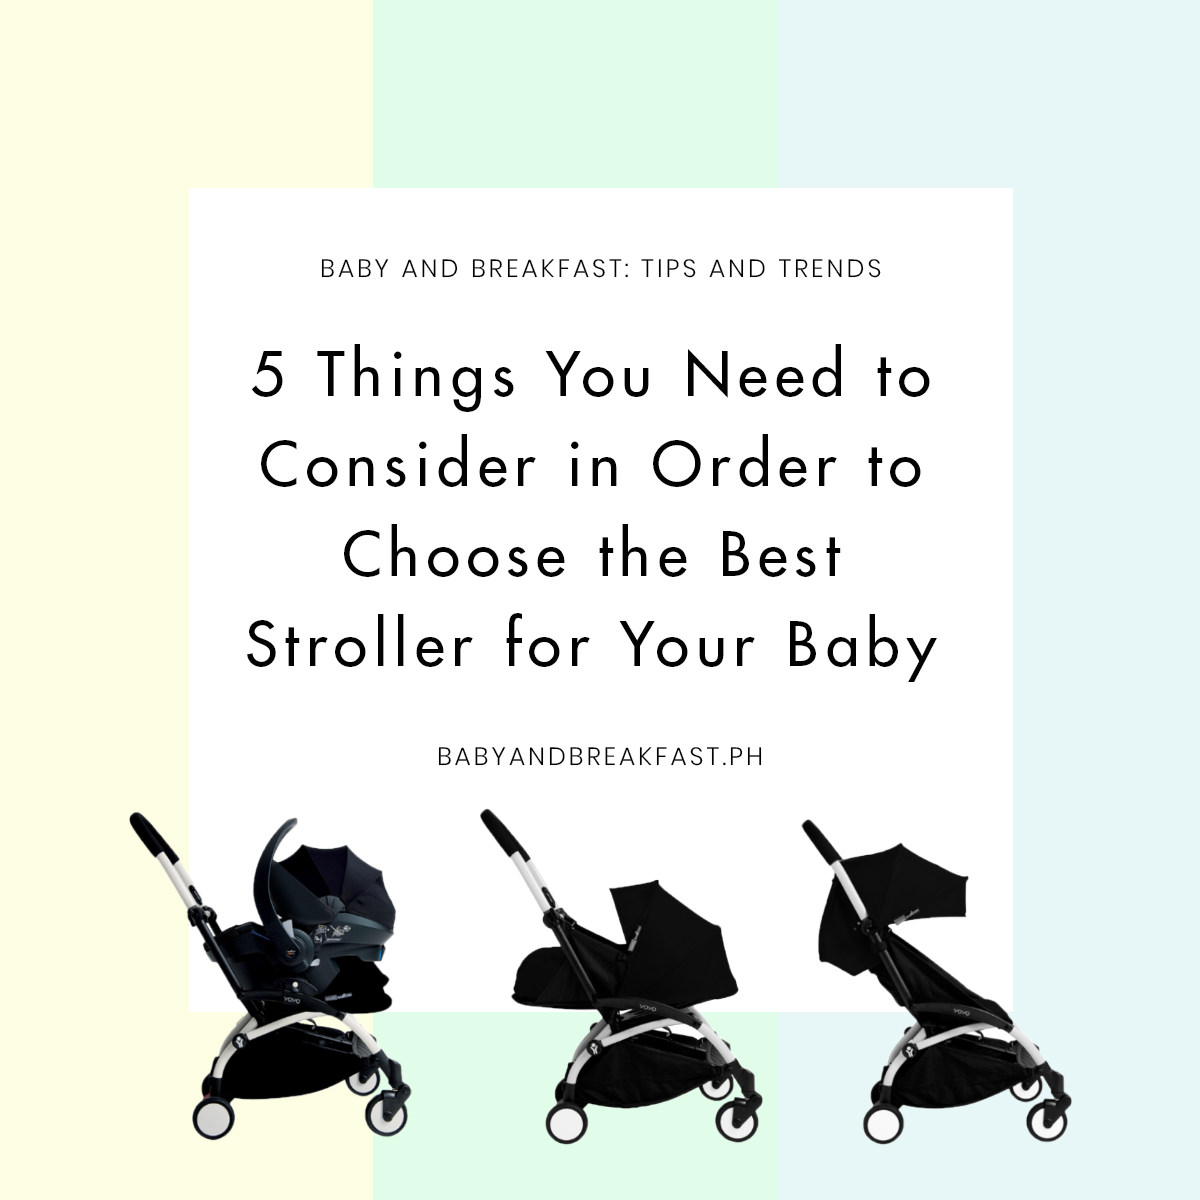 Baby and Breakfast: Tips and Trends 5 Things You Need to Consider in Order to Choose the Best Stroller for Your Baby